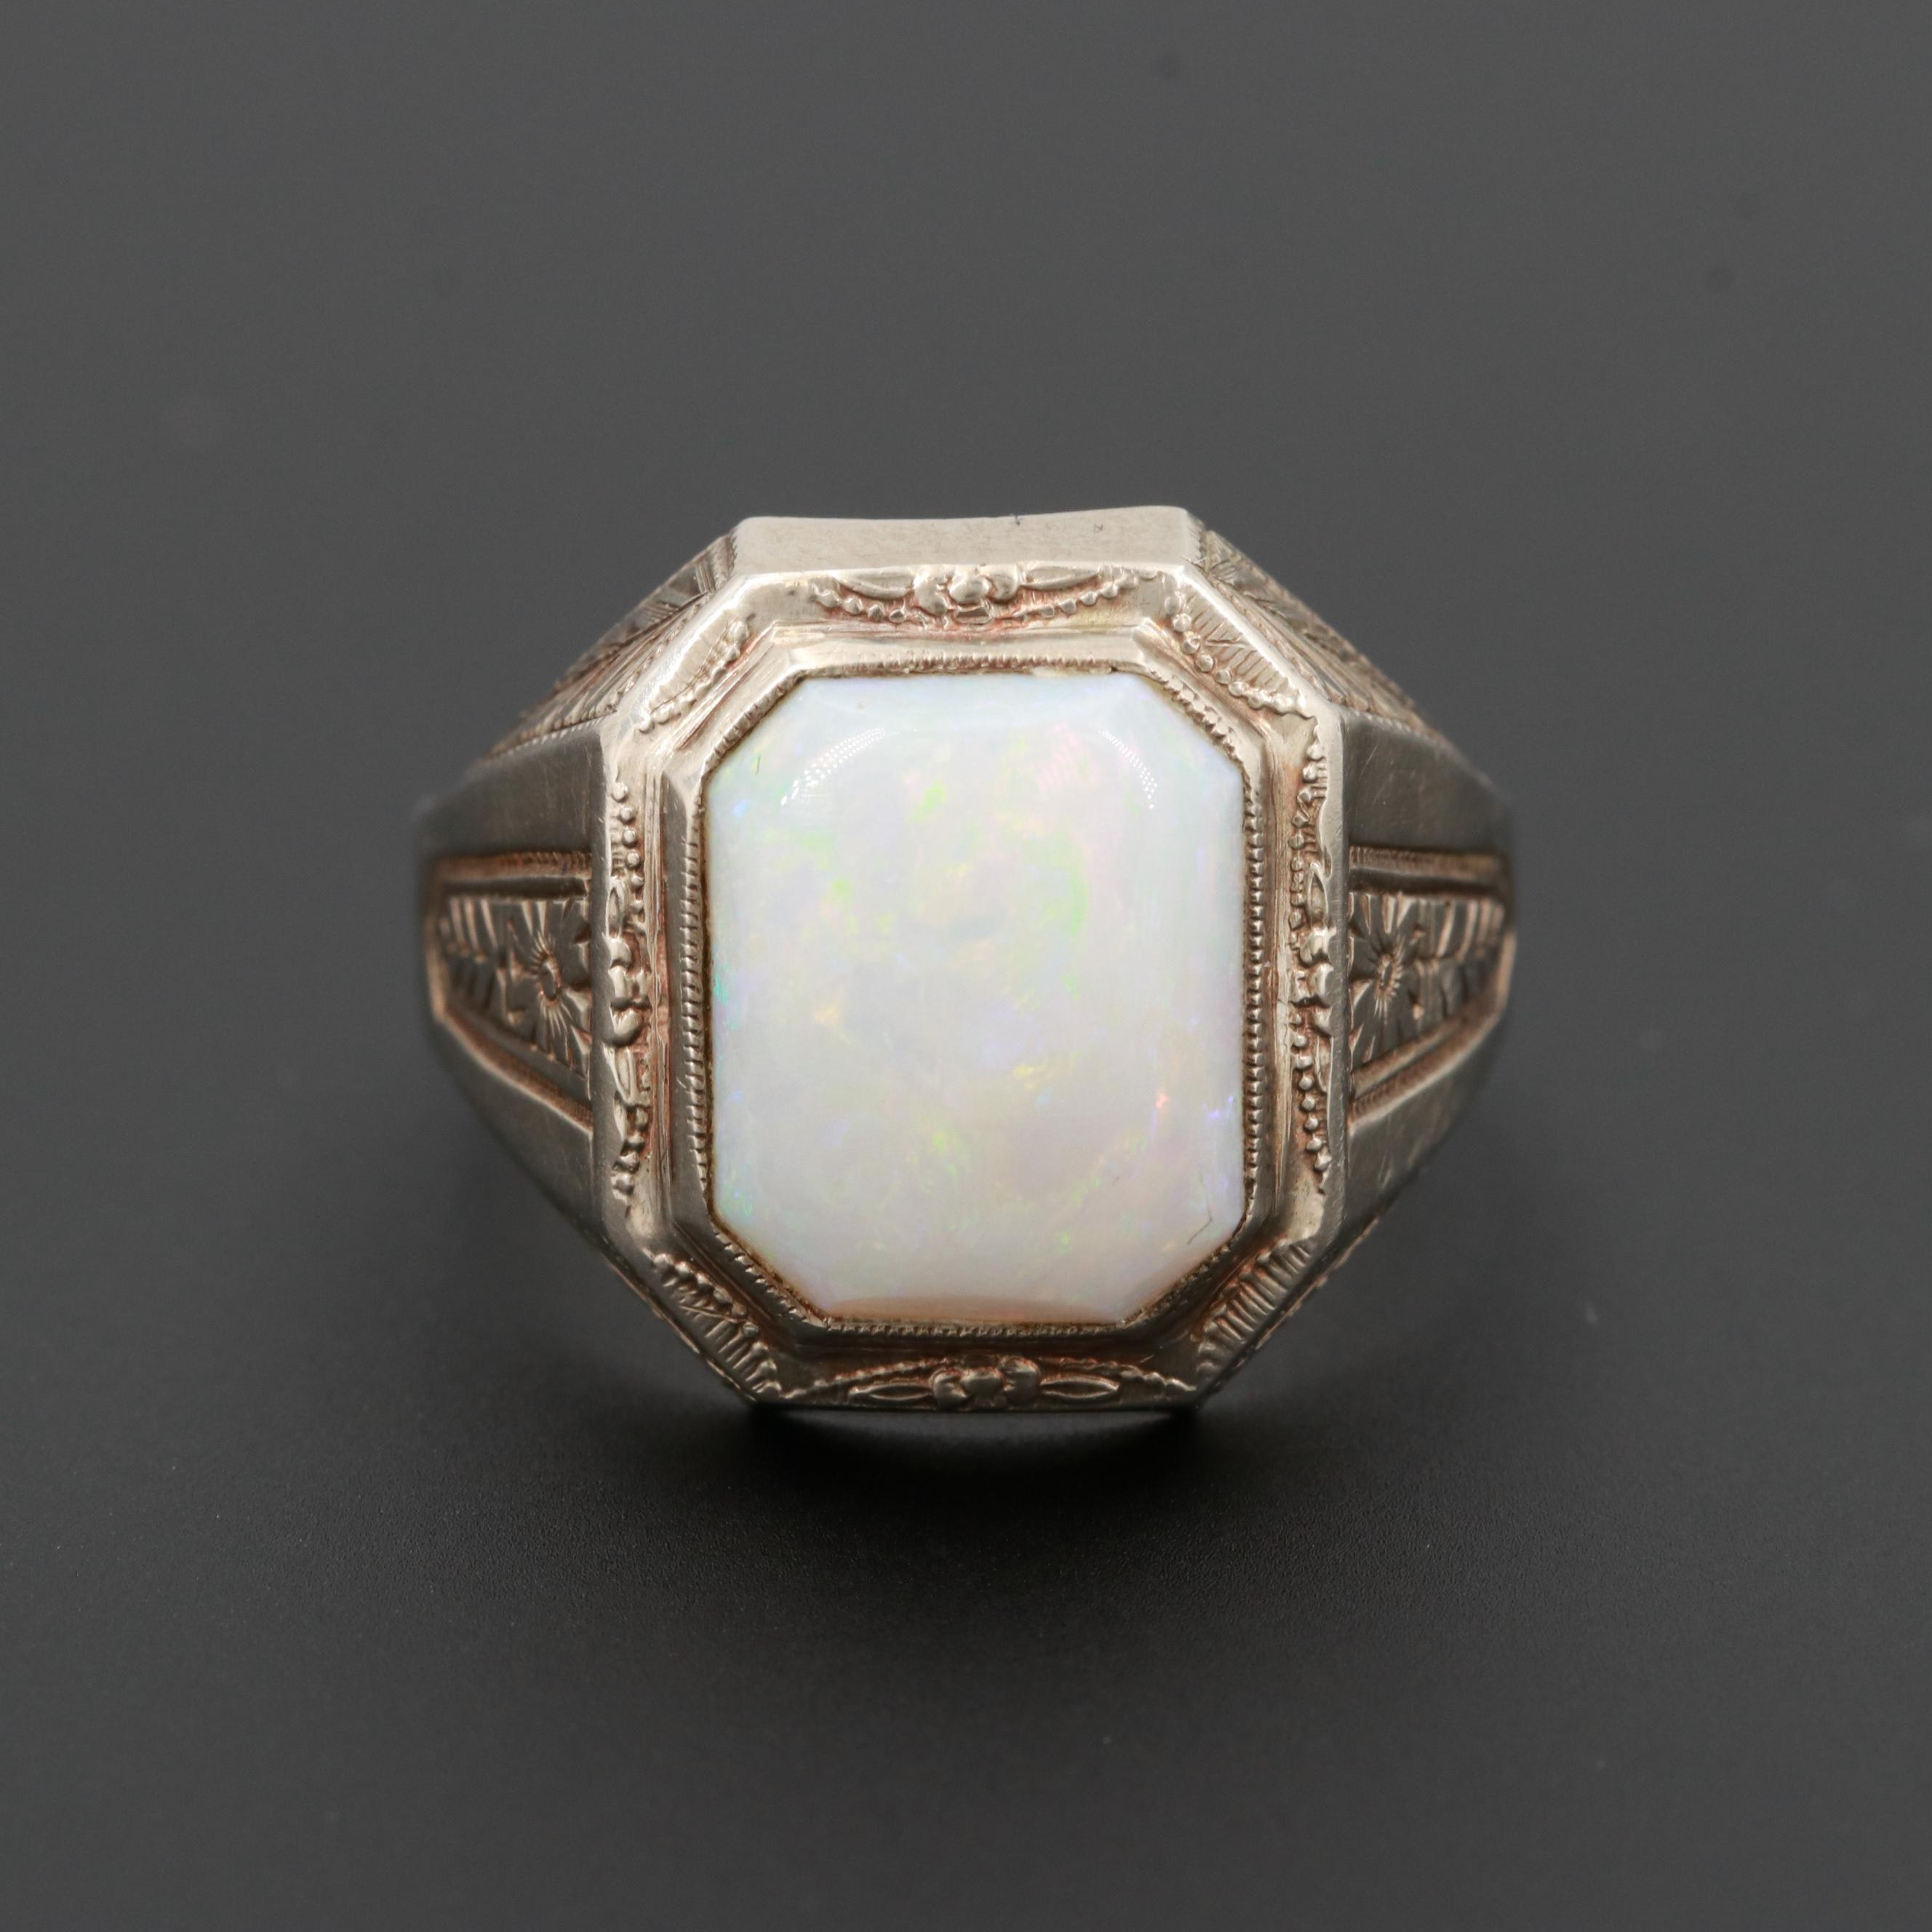 Vintage 10K White Gold Opal Ring